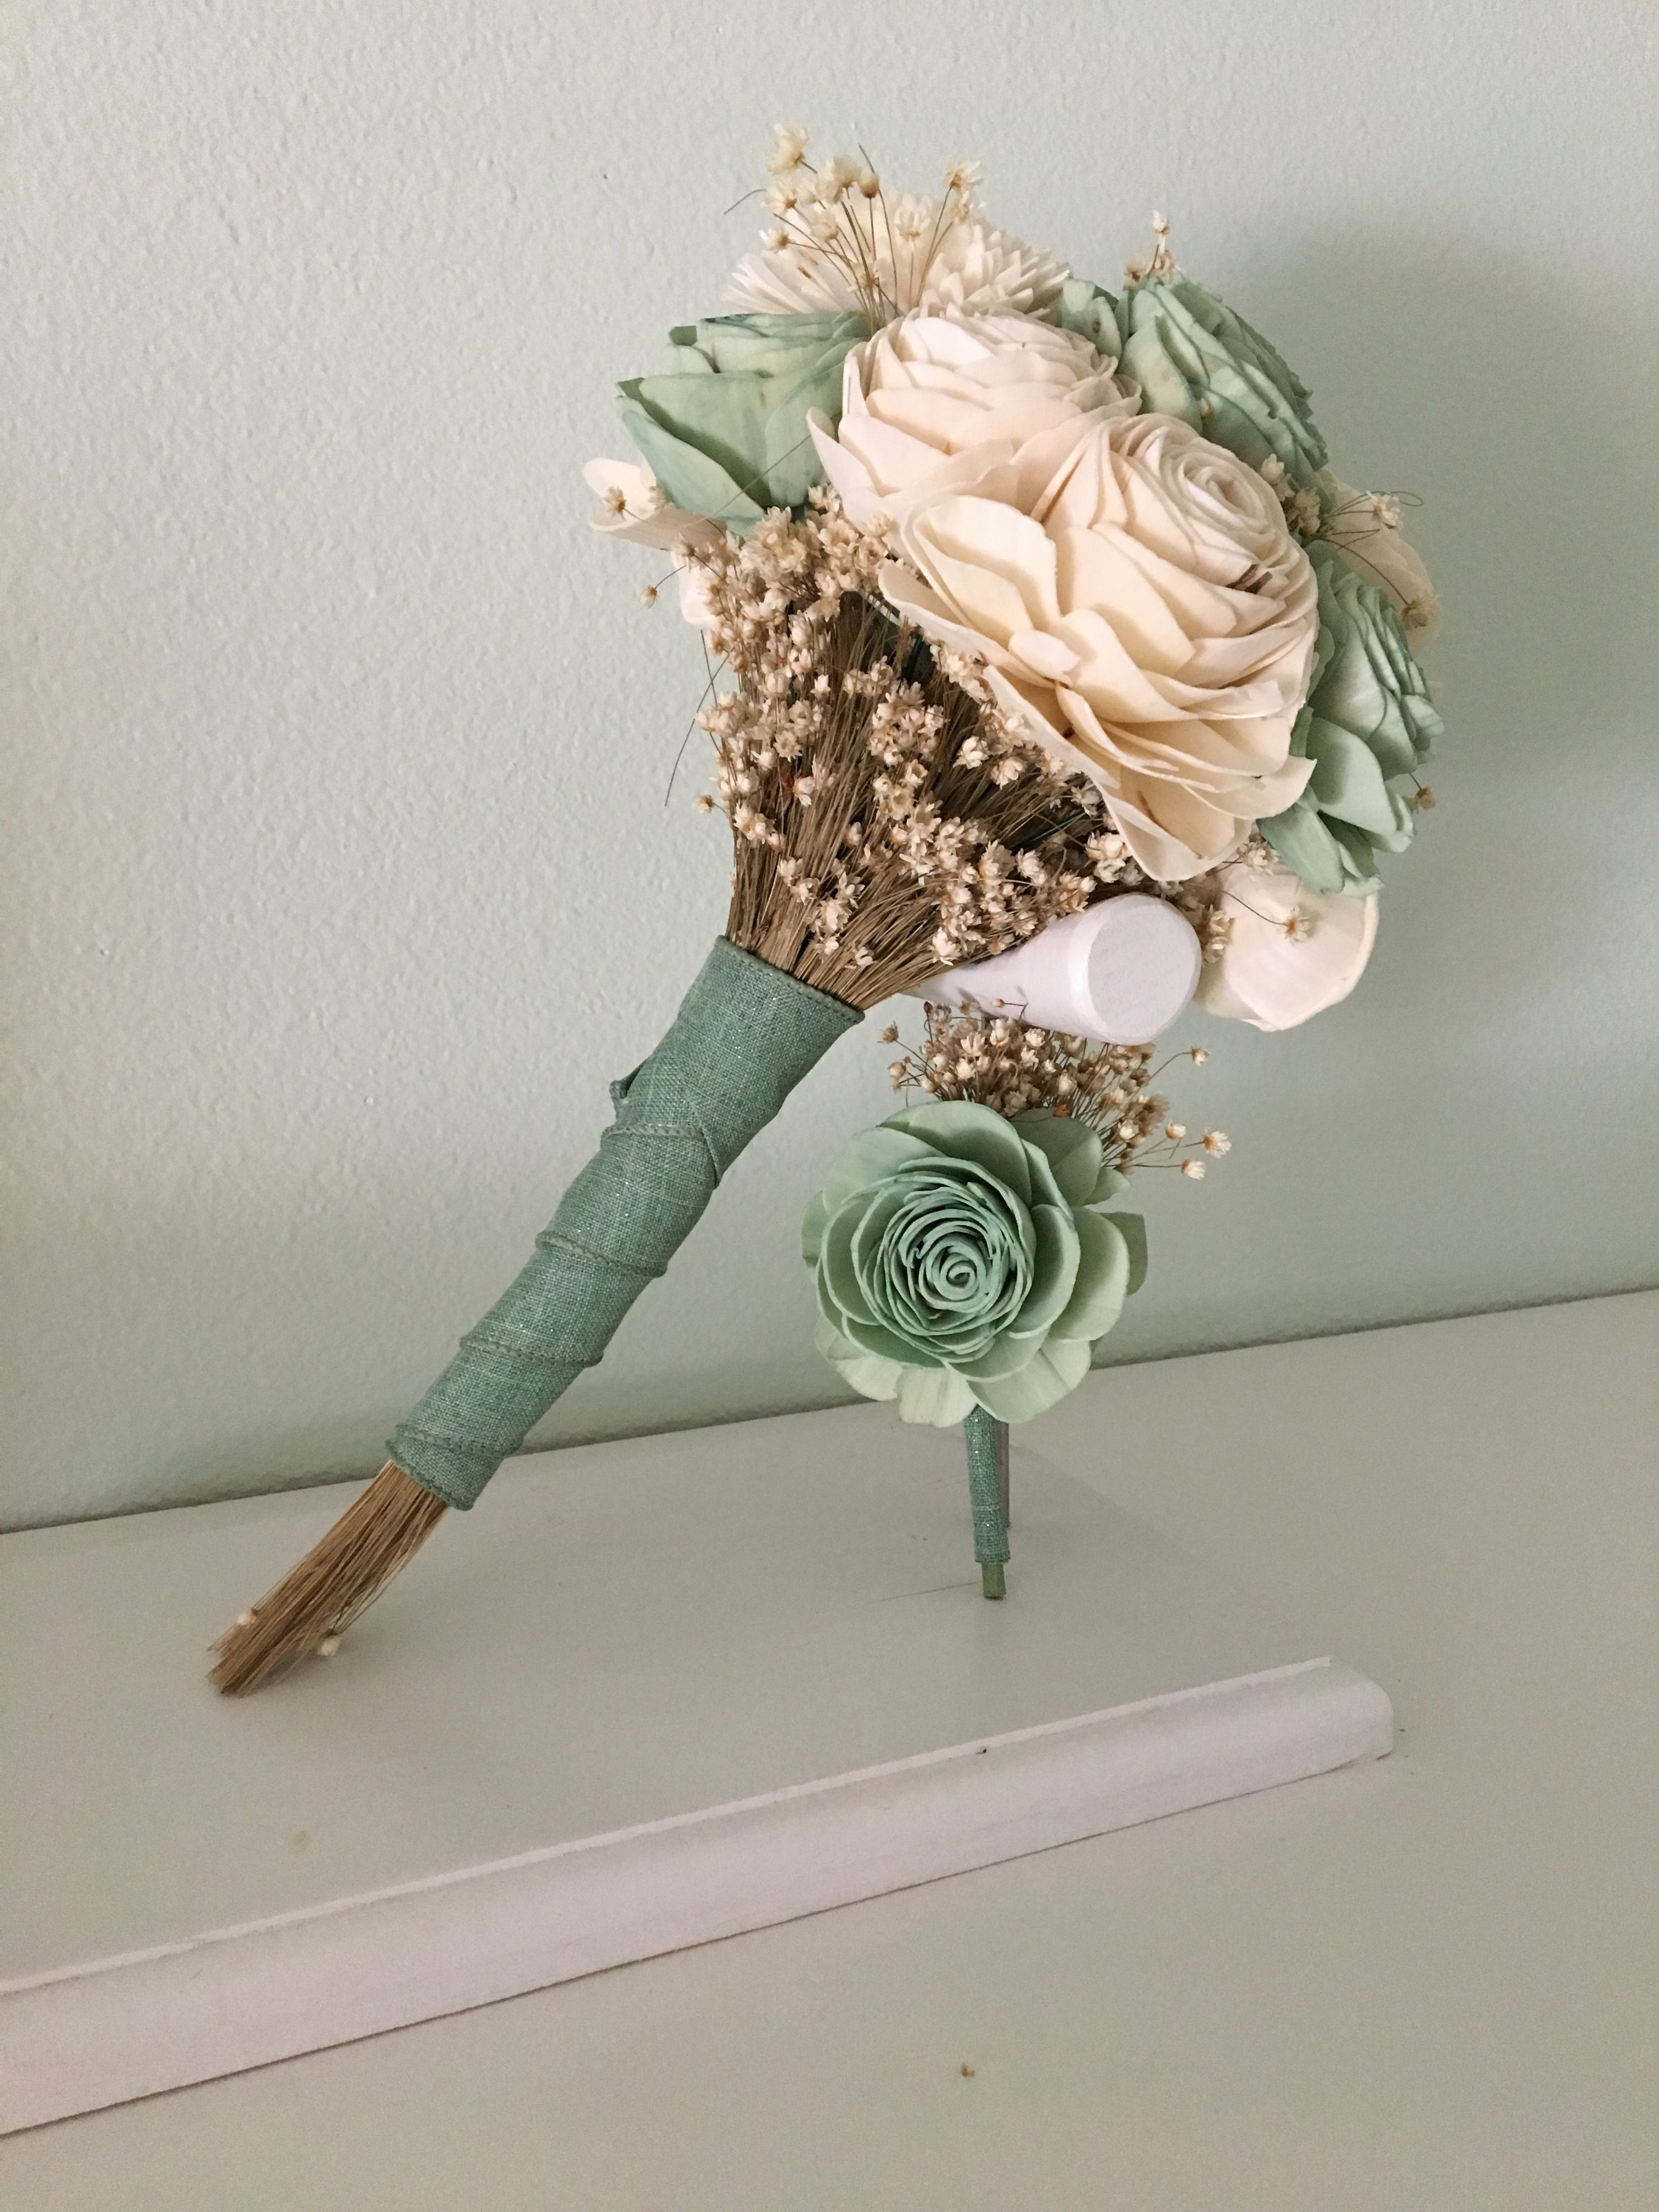 Sage green wood flower bouquet six sizes available plus diy kits sage green wood flower bouquet six sizes available plus diy kits sola wood flowers pinterest sola wood flowers flower bouquets and wood flowers izmirmasajfo